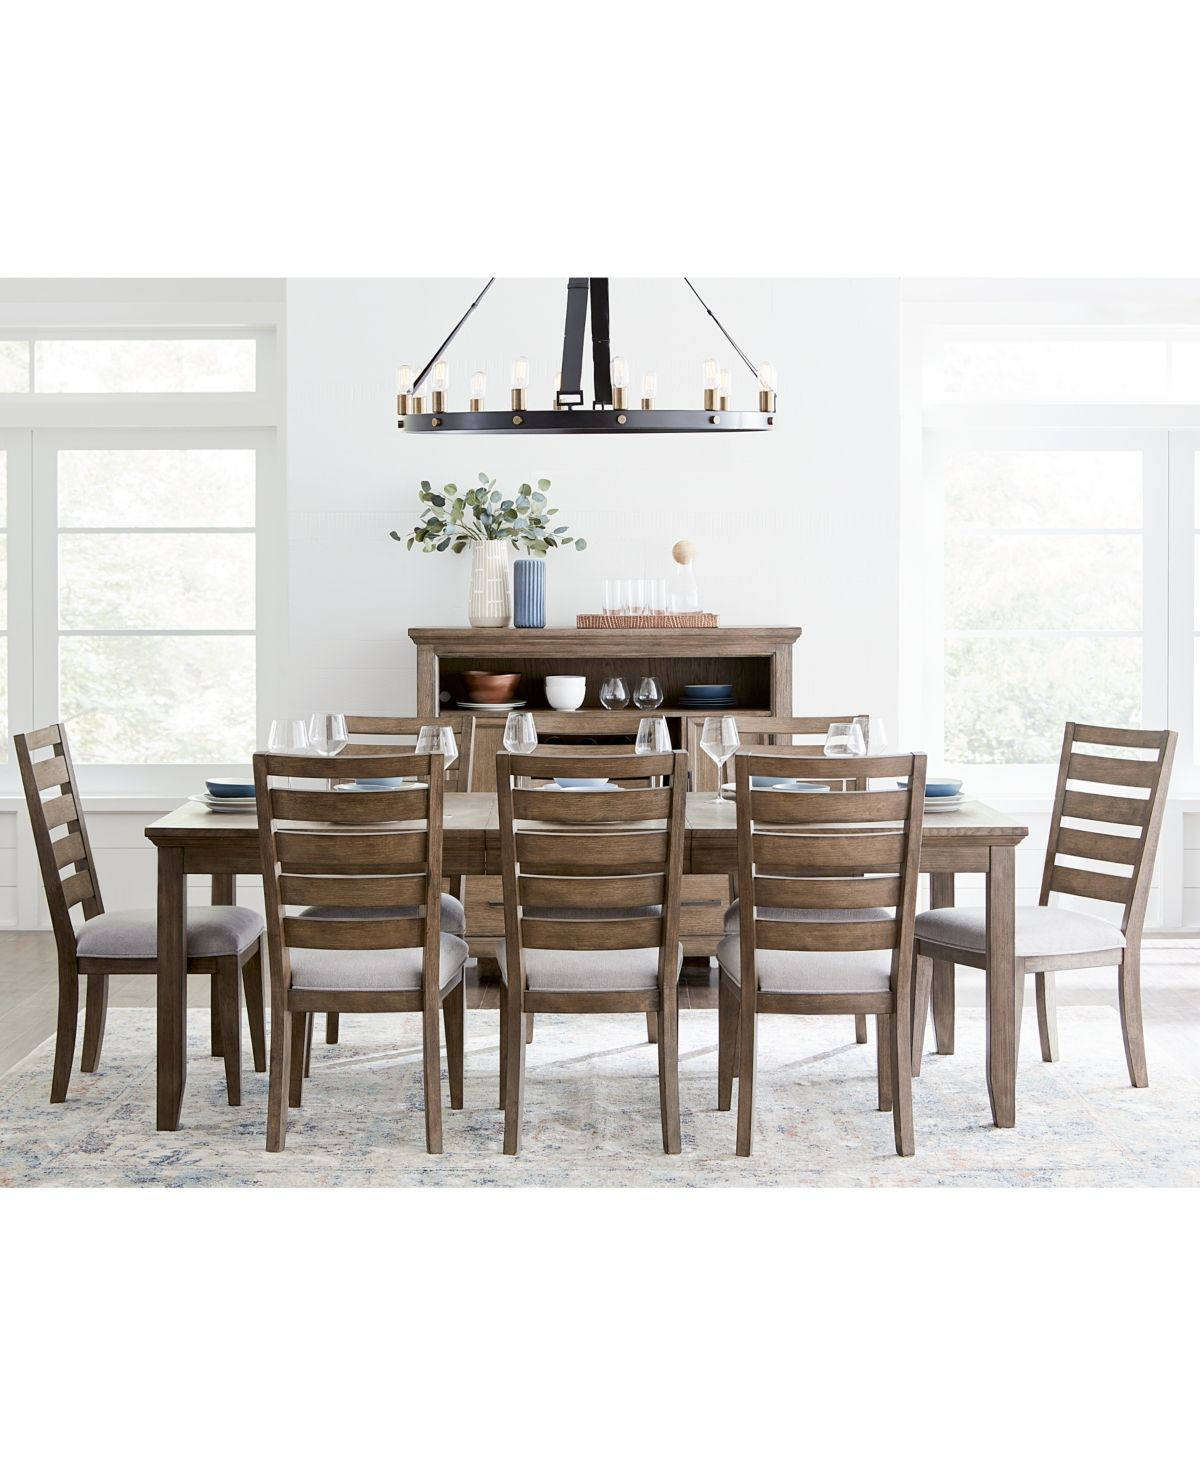 Furniture Mesa Dining Furniture 9 Pc Set Expandable Table 8 Side Chairs Created For Macy S Reviews Furniture Macy S Expandable Dining Table Dining